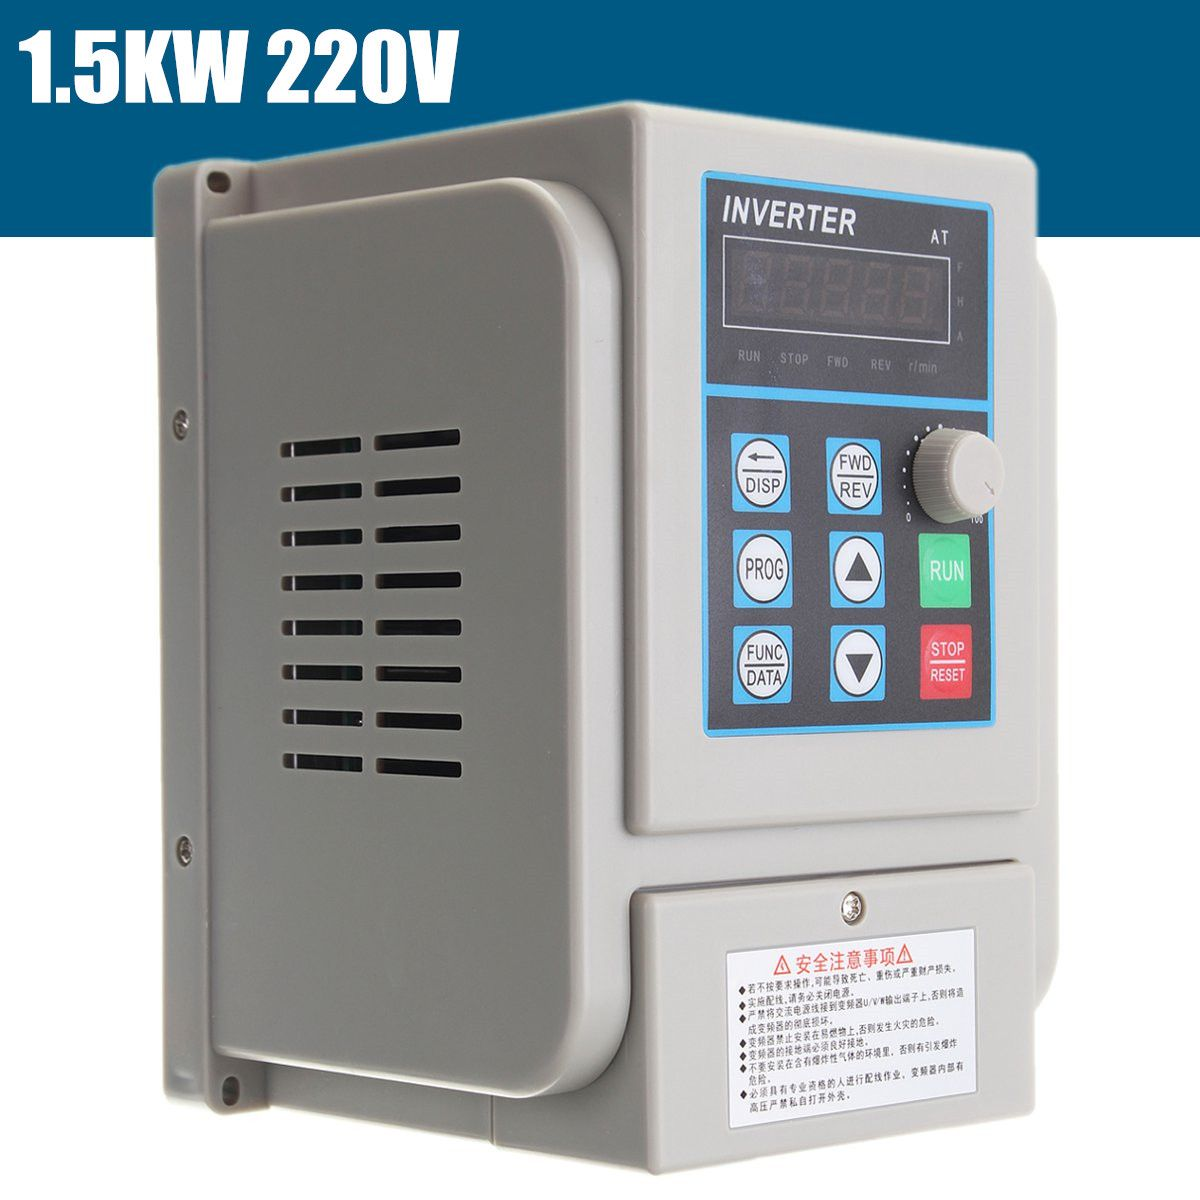 CNC Spindle motor speed control 1.5kw 220V VFD Variable Frequency Drive VFD 2HP frequency inverter for motor New Arrival